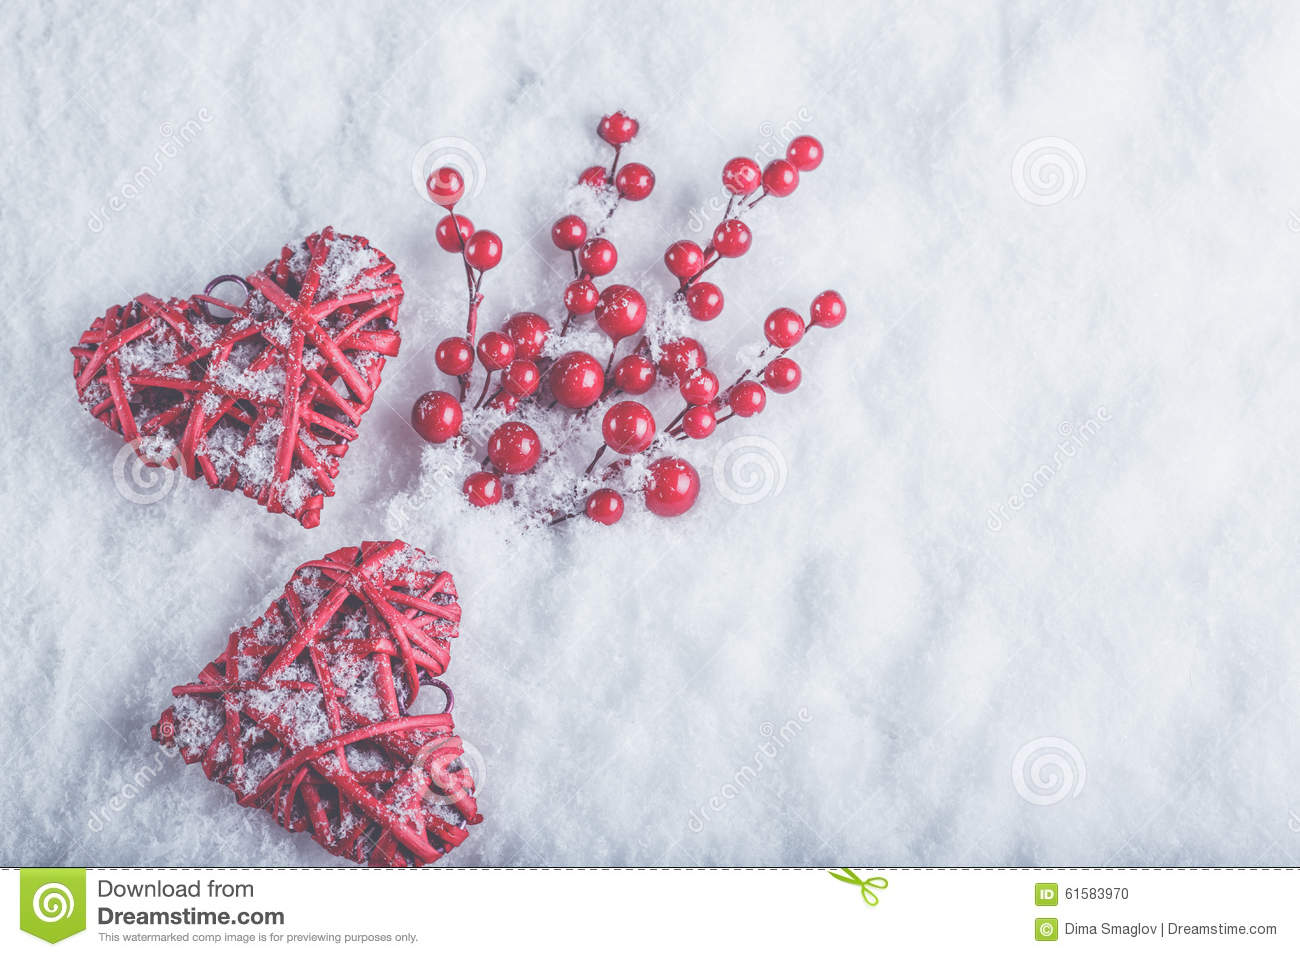 Beautiful christmas snow pictures the snow on christmas day in - Background Berries Cozy Day Hearts Love Mistletoe Red Snow